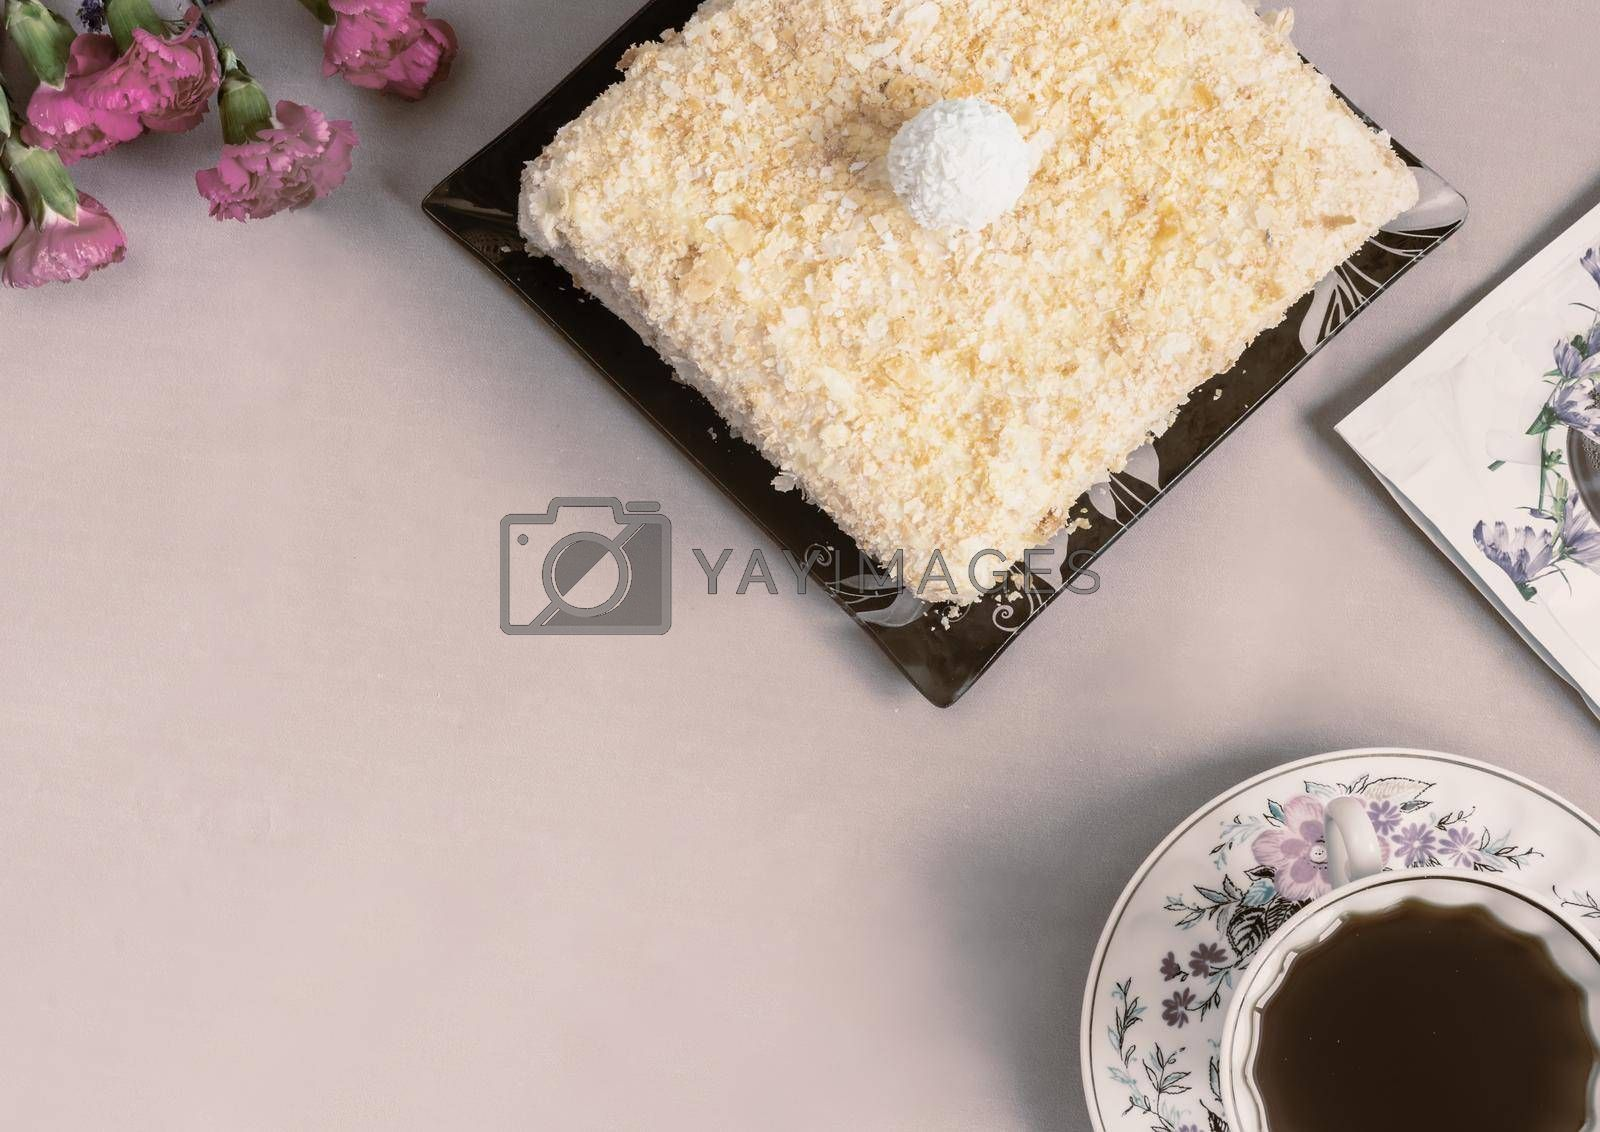 Alternative coffee substitute: a hot decaffeinated drink made from natural chicory, on the table in a white cup. Next to a delicious cake and flowers. Top view with copy space.